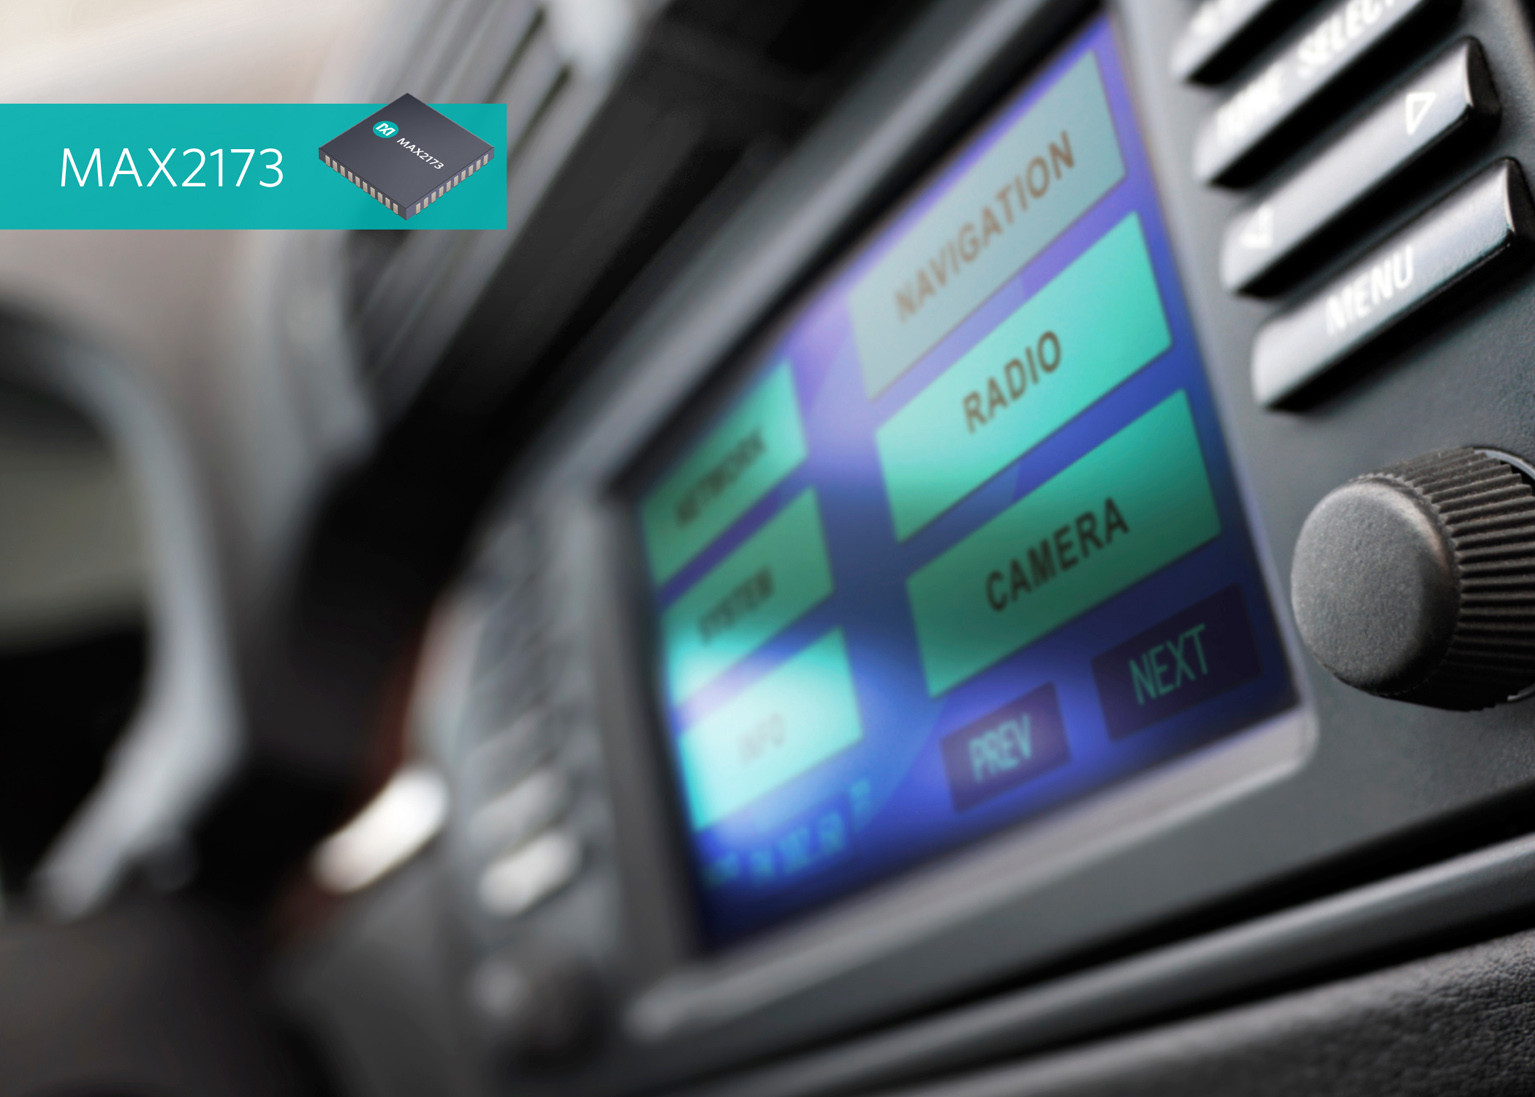 Digital Audio Broadcast Receiver (DAB) from Maxim Integrated Enables